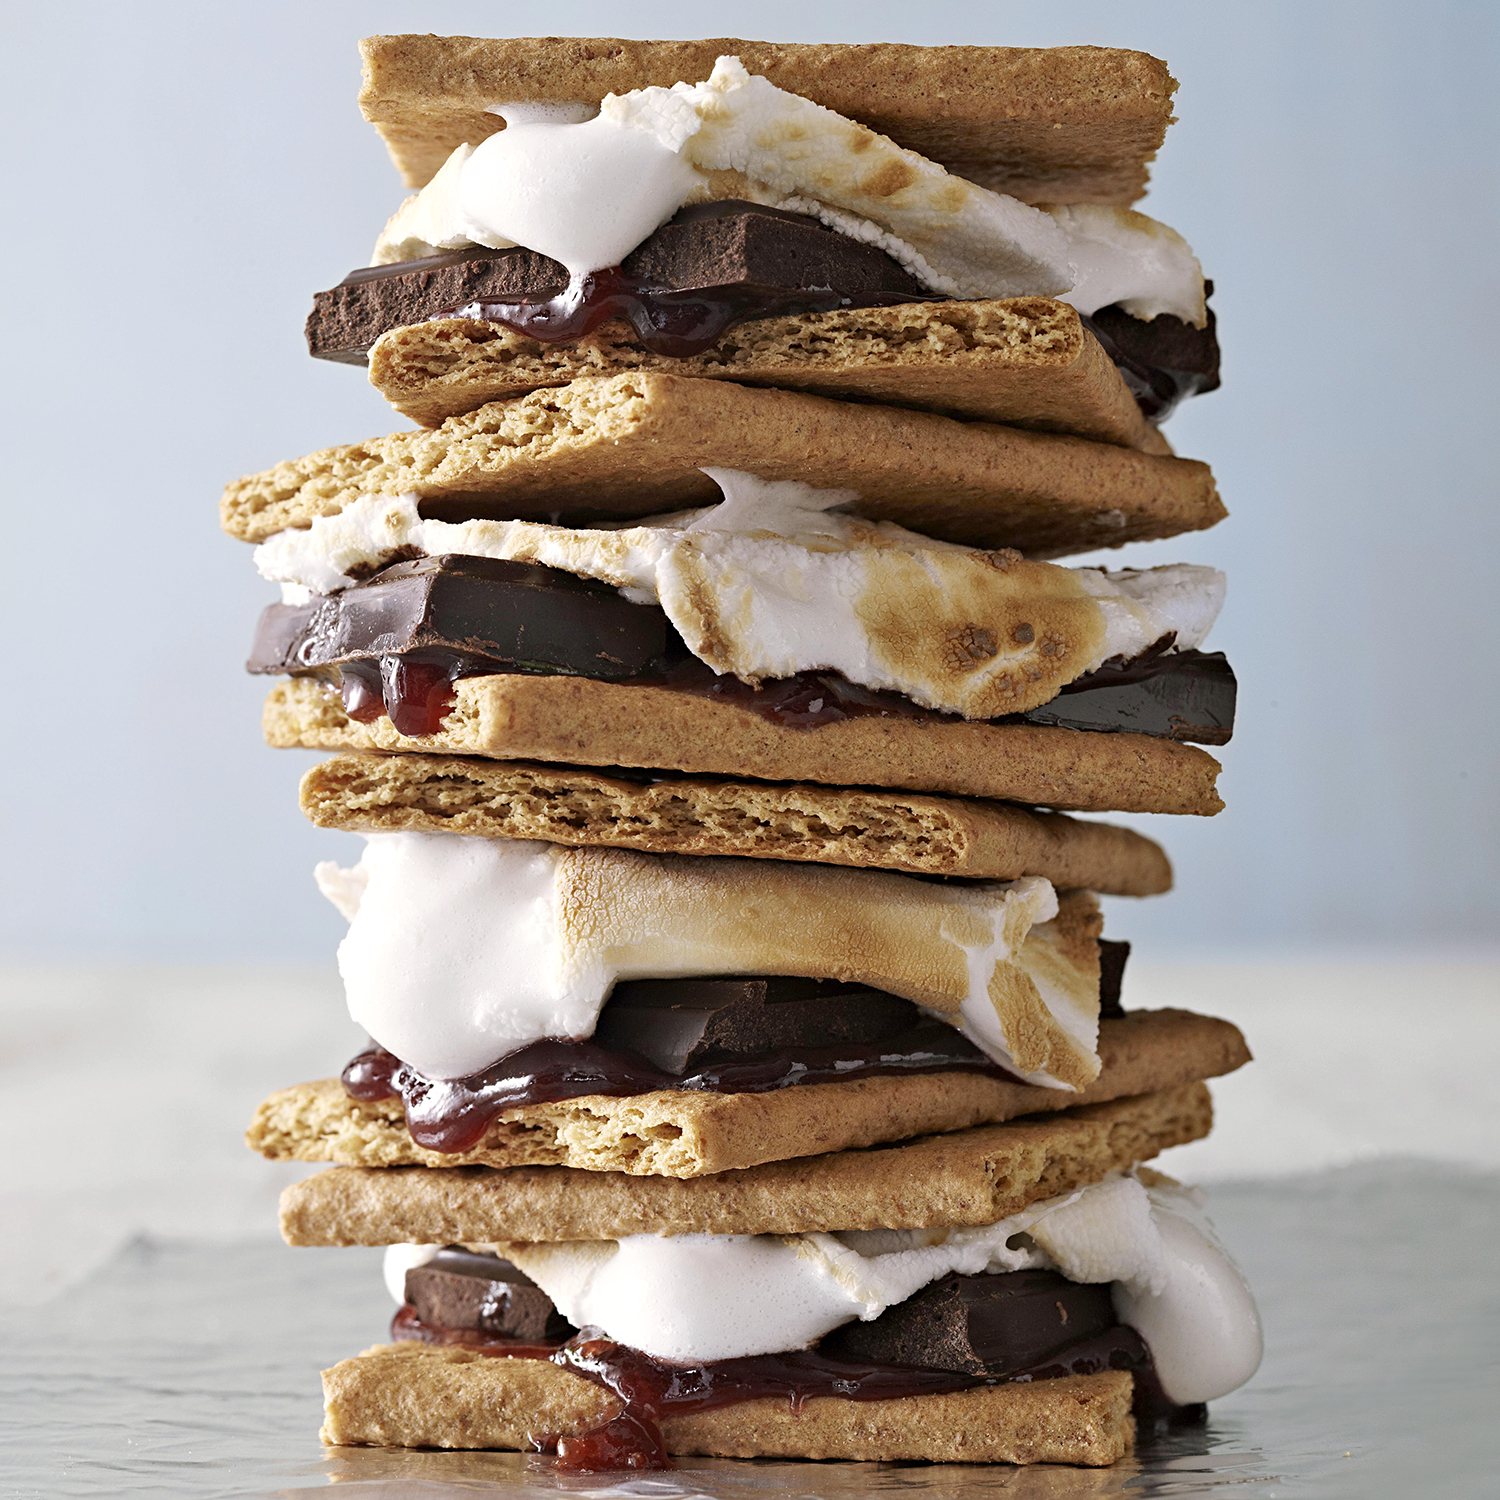 stacked smores on blue background